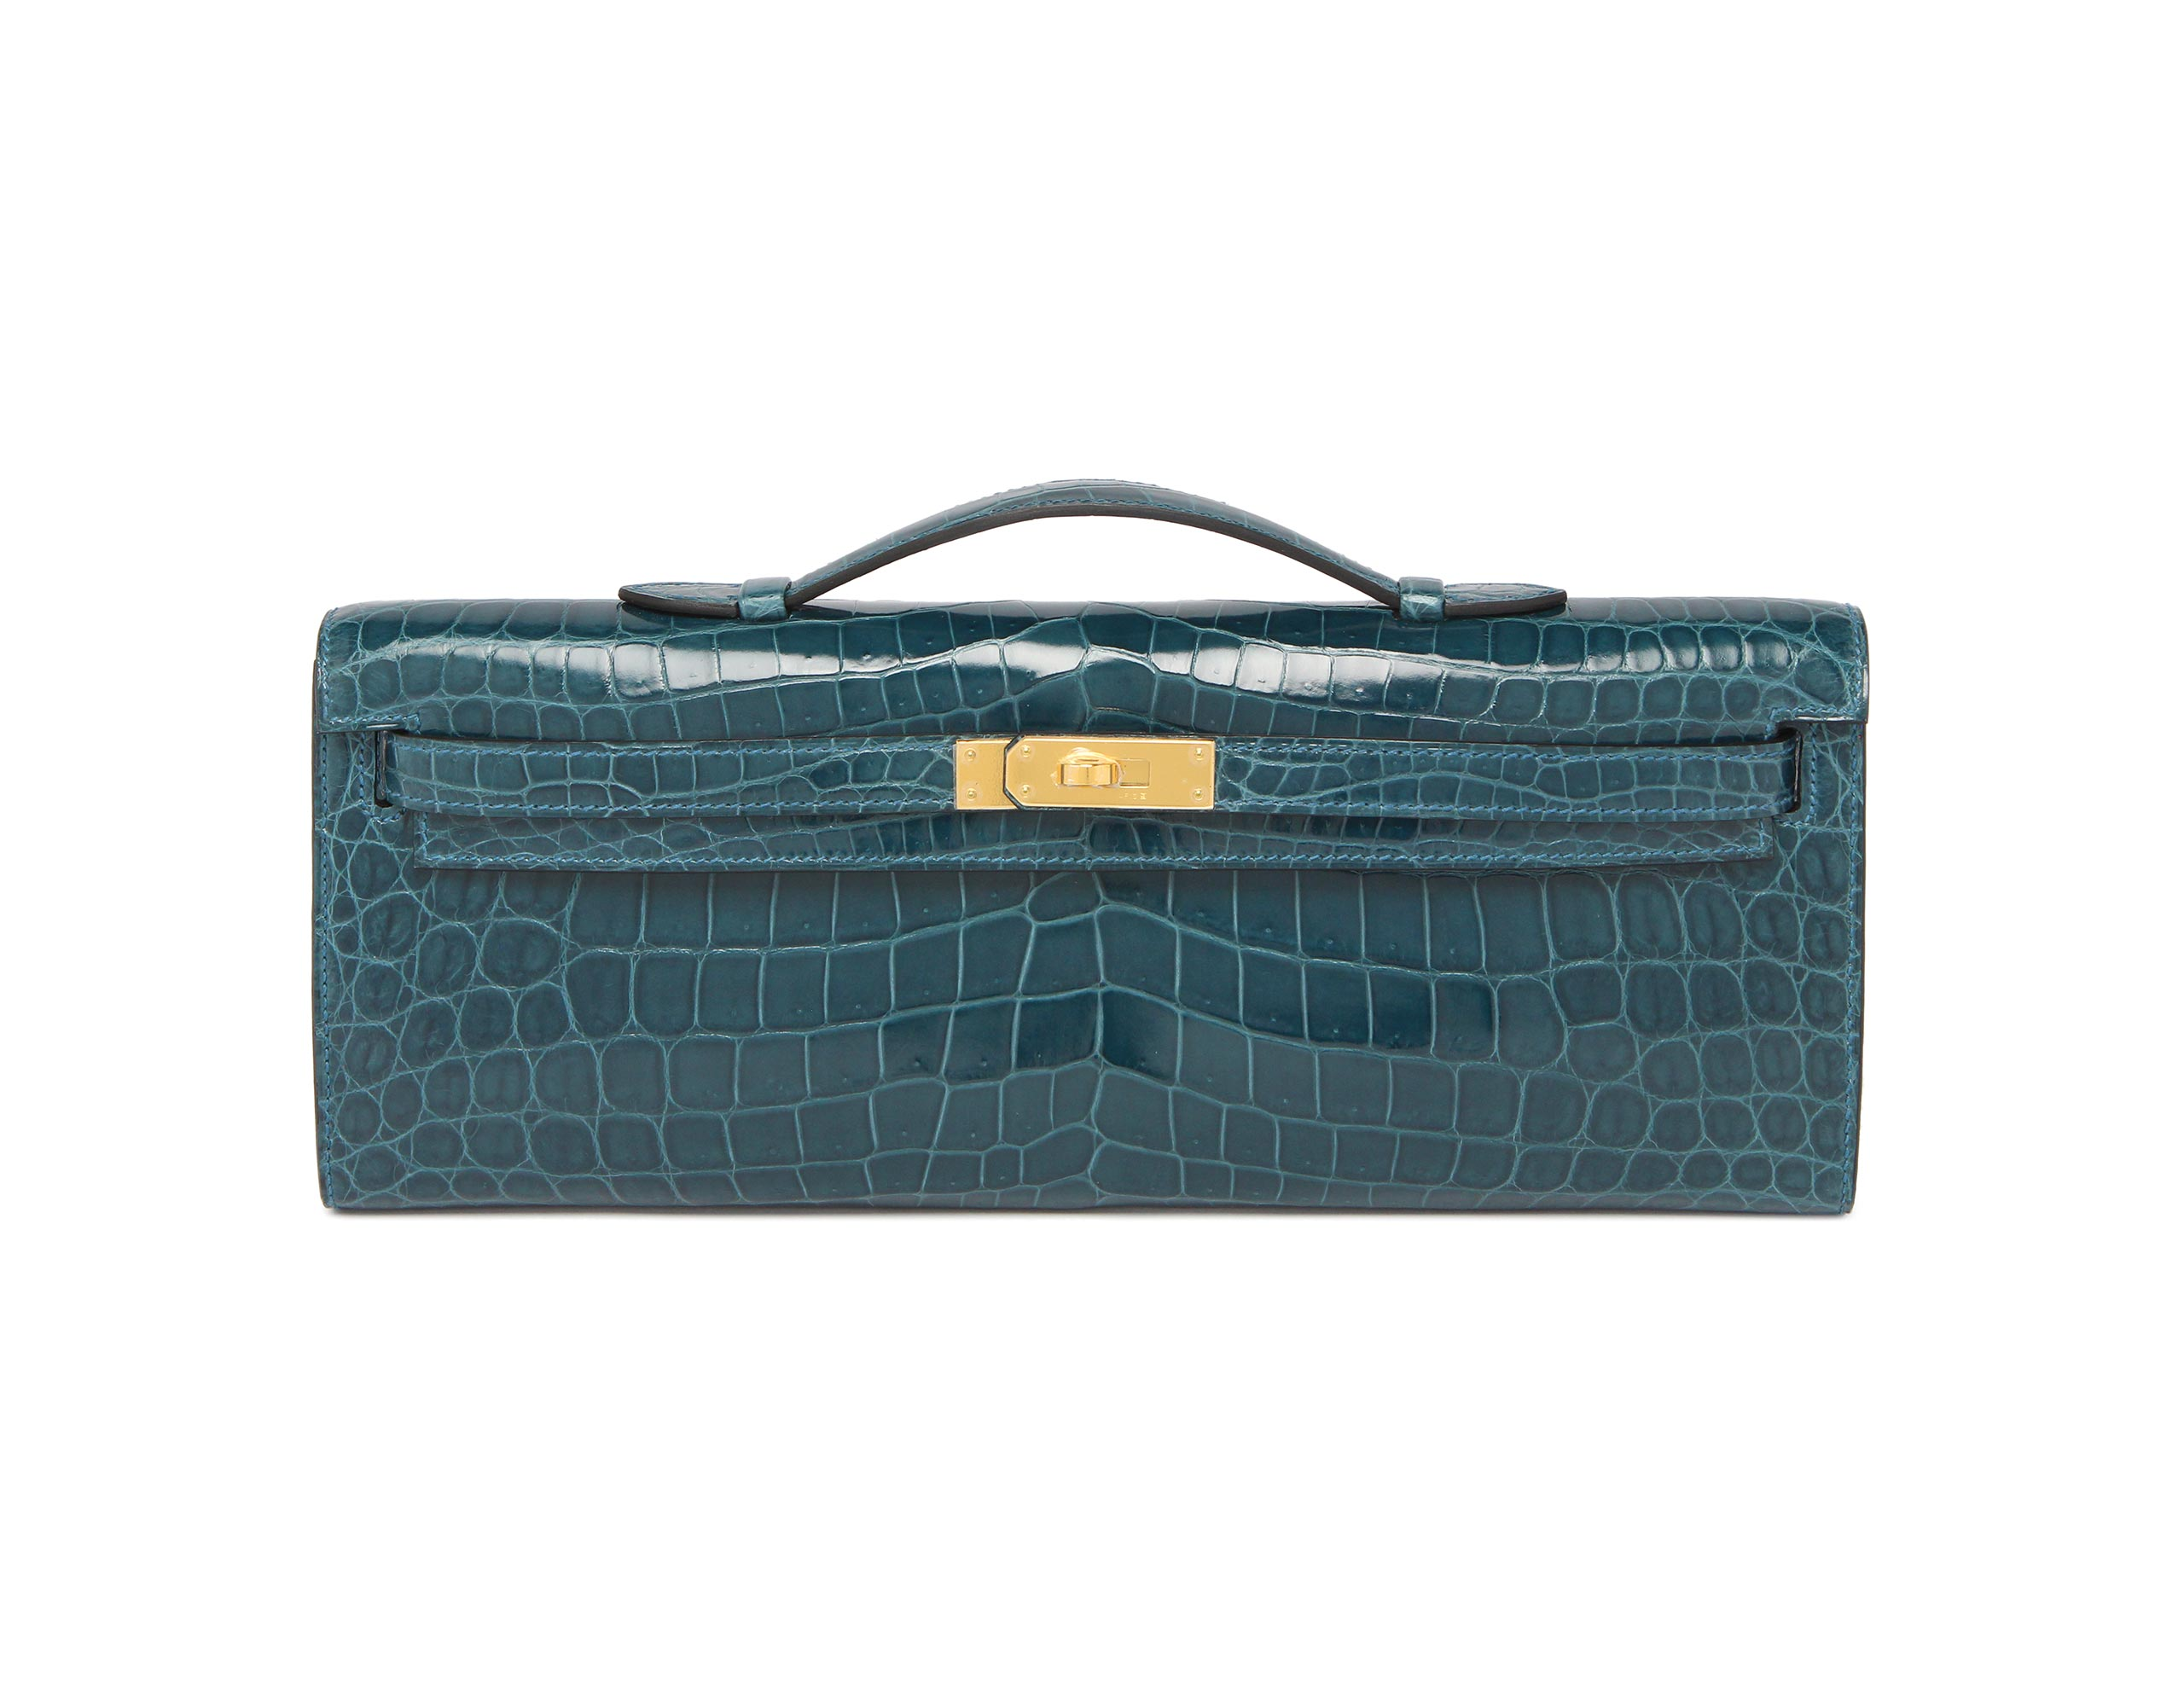 Hermes Clutch Bags For Sale | Bags of Luxury